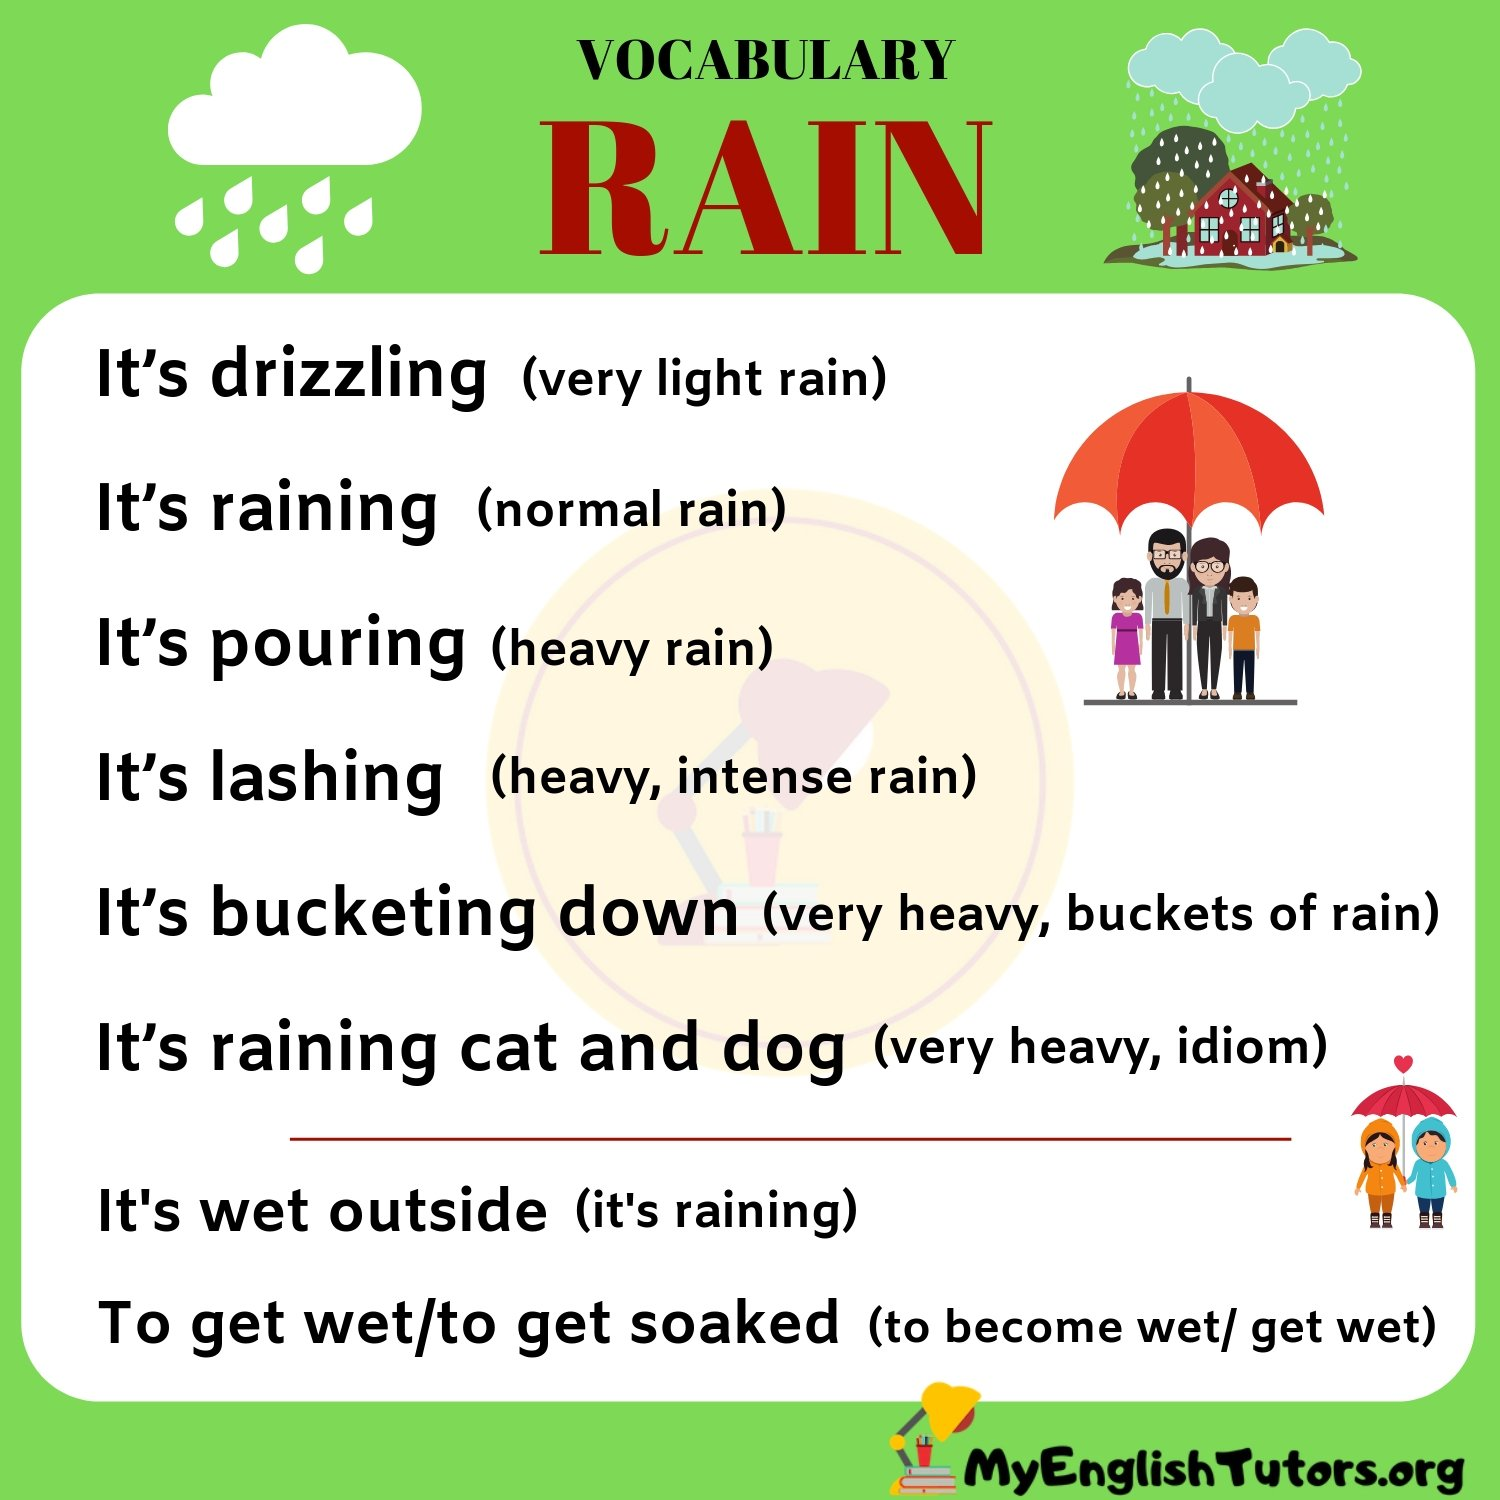 RAIN Vocabulary